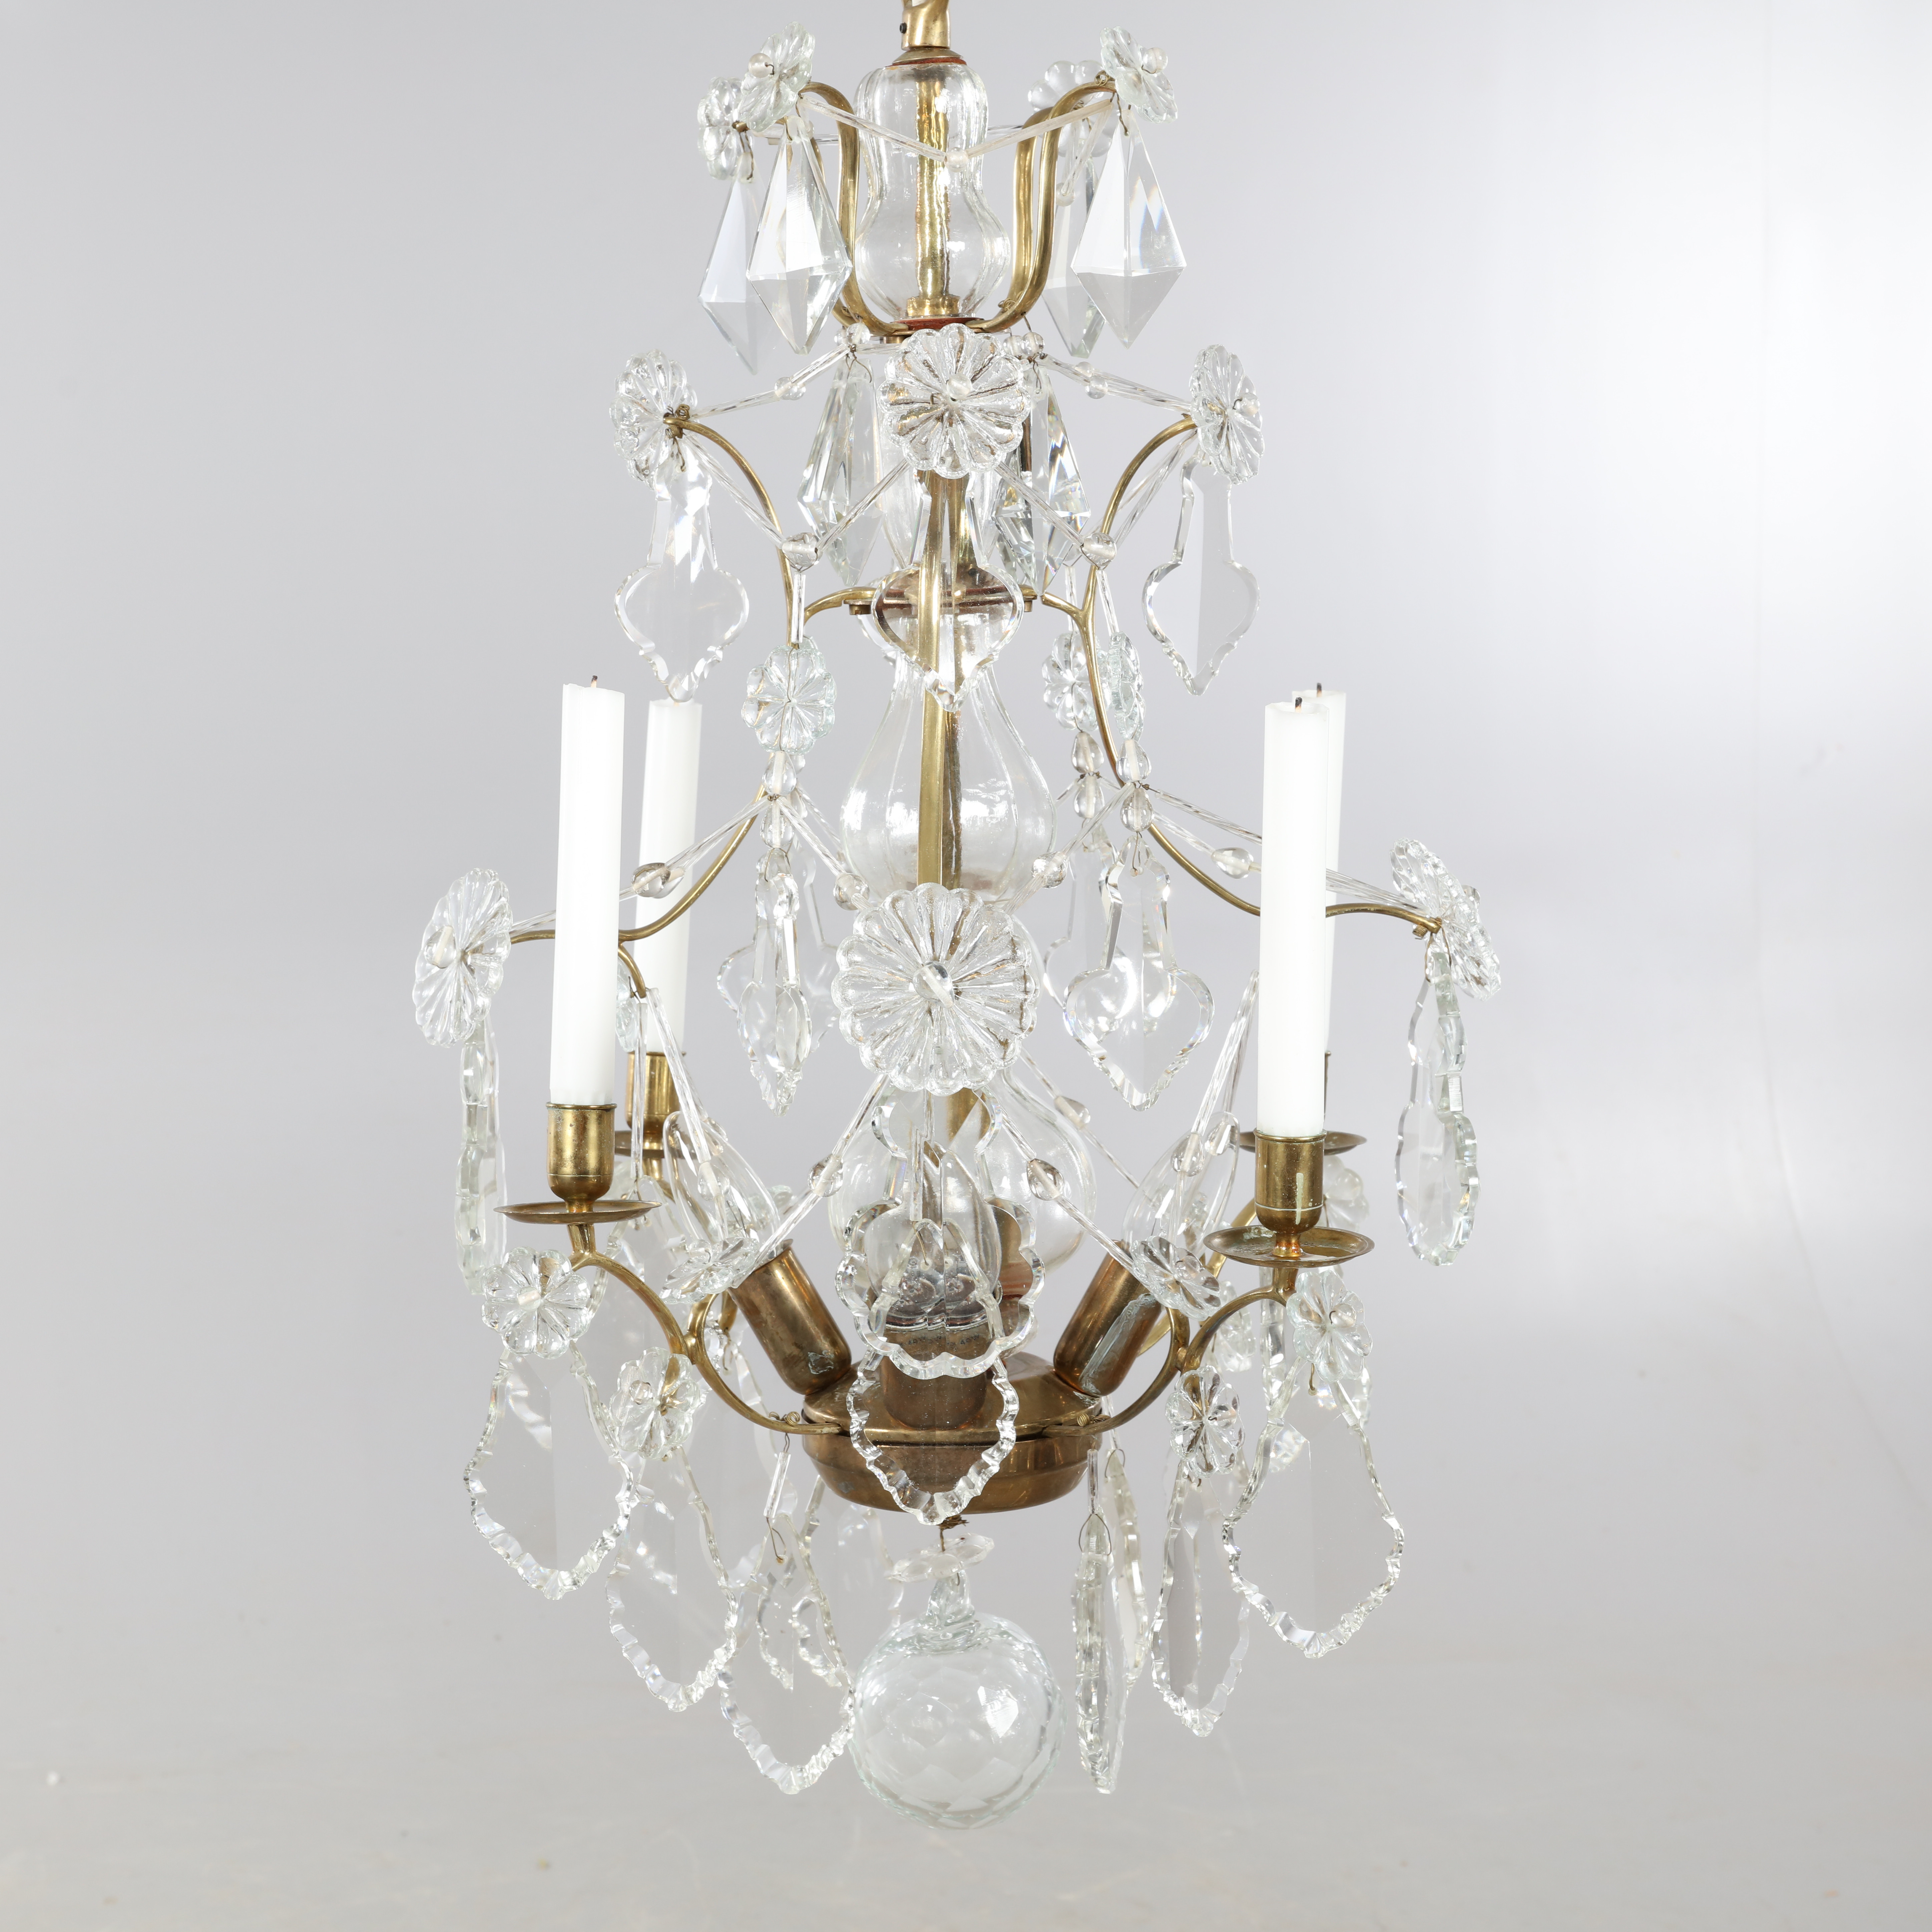 Chandelier Sturehov Rococo Style From Ikea S 1700s Series Lighting Lamps Ceiling Lights Auctionet